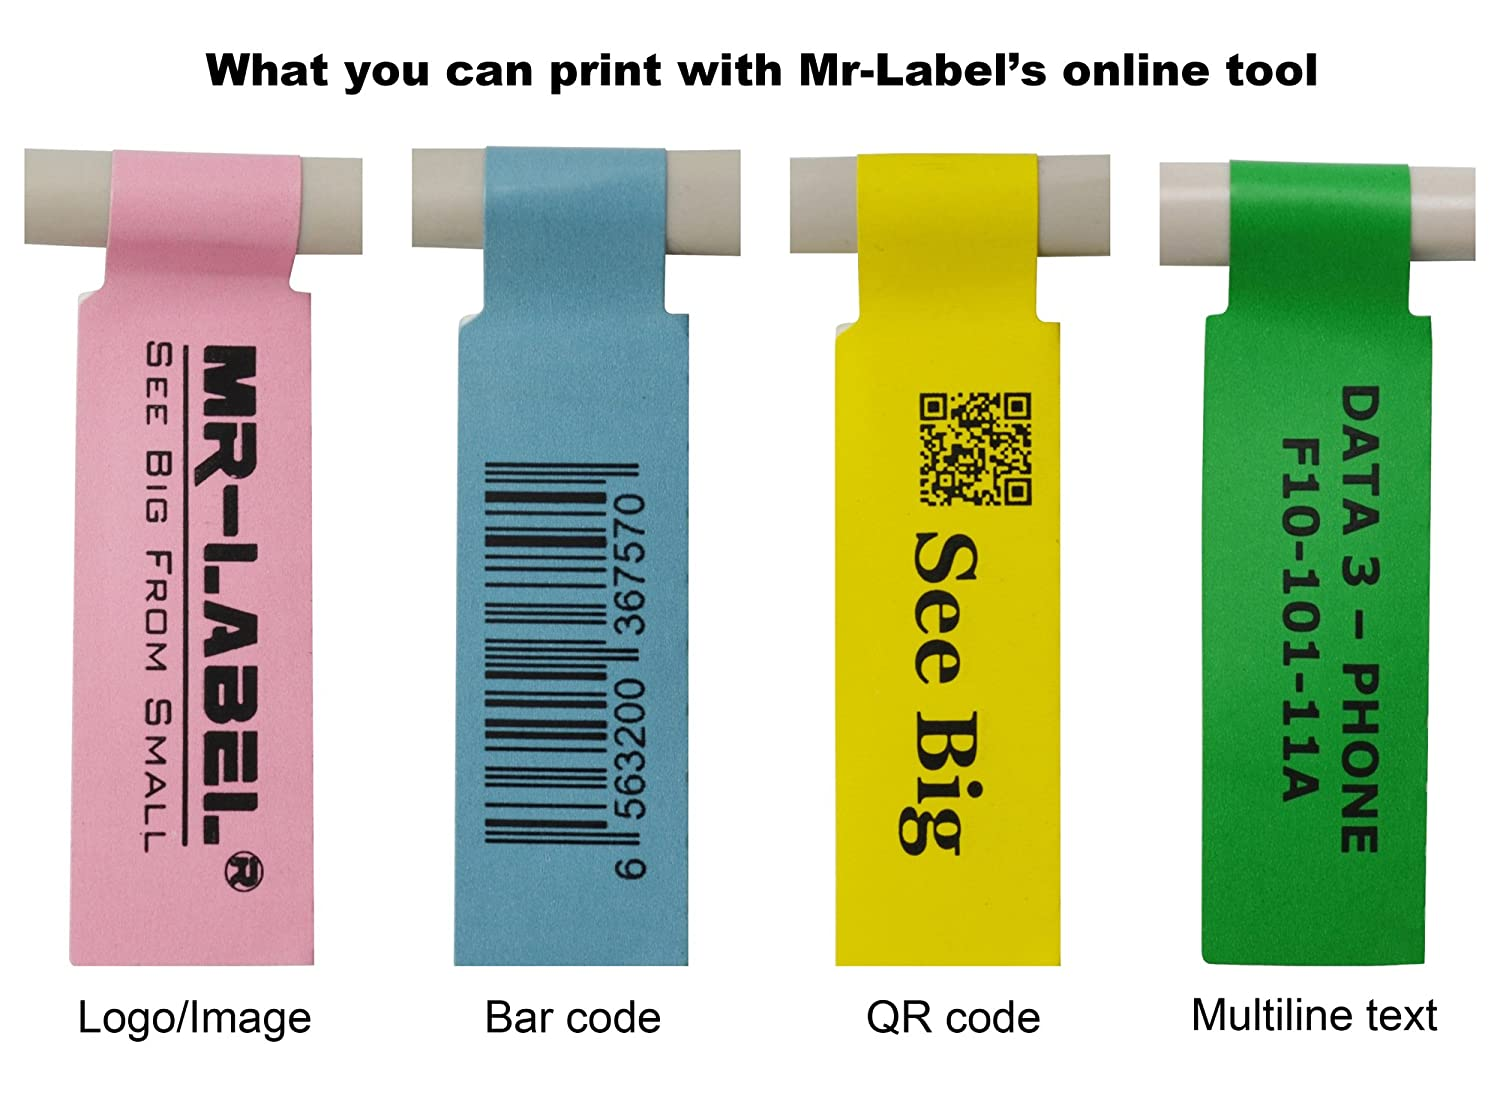 Amazon.com : Mr-Label® Self-adhesive Cable Label - Waterproof | Tear ...